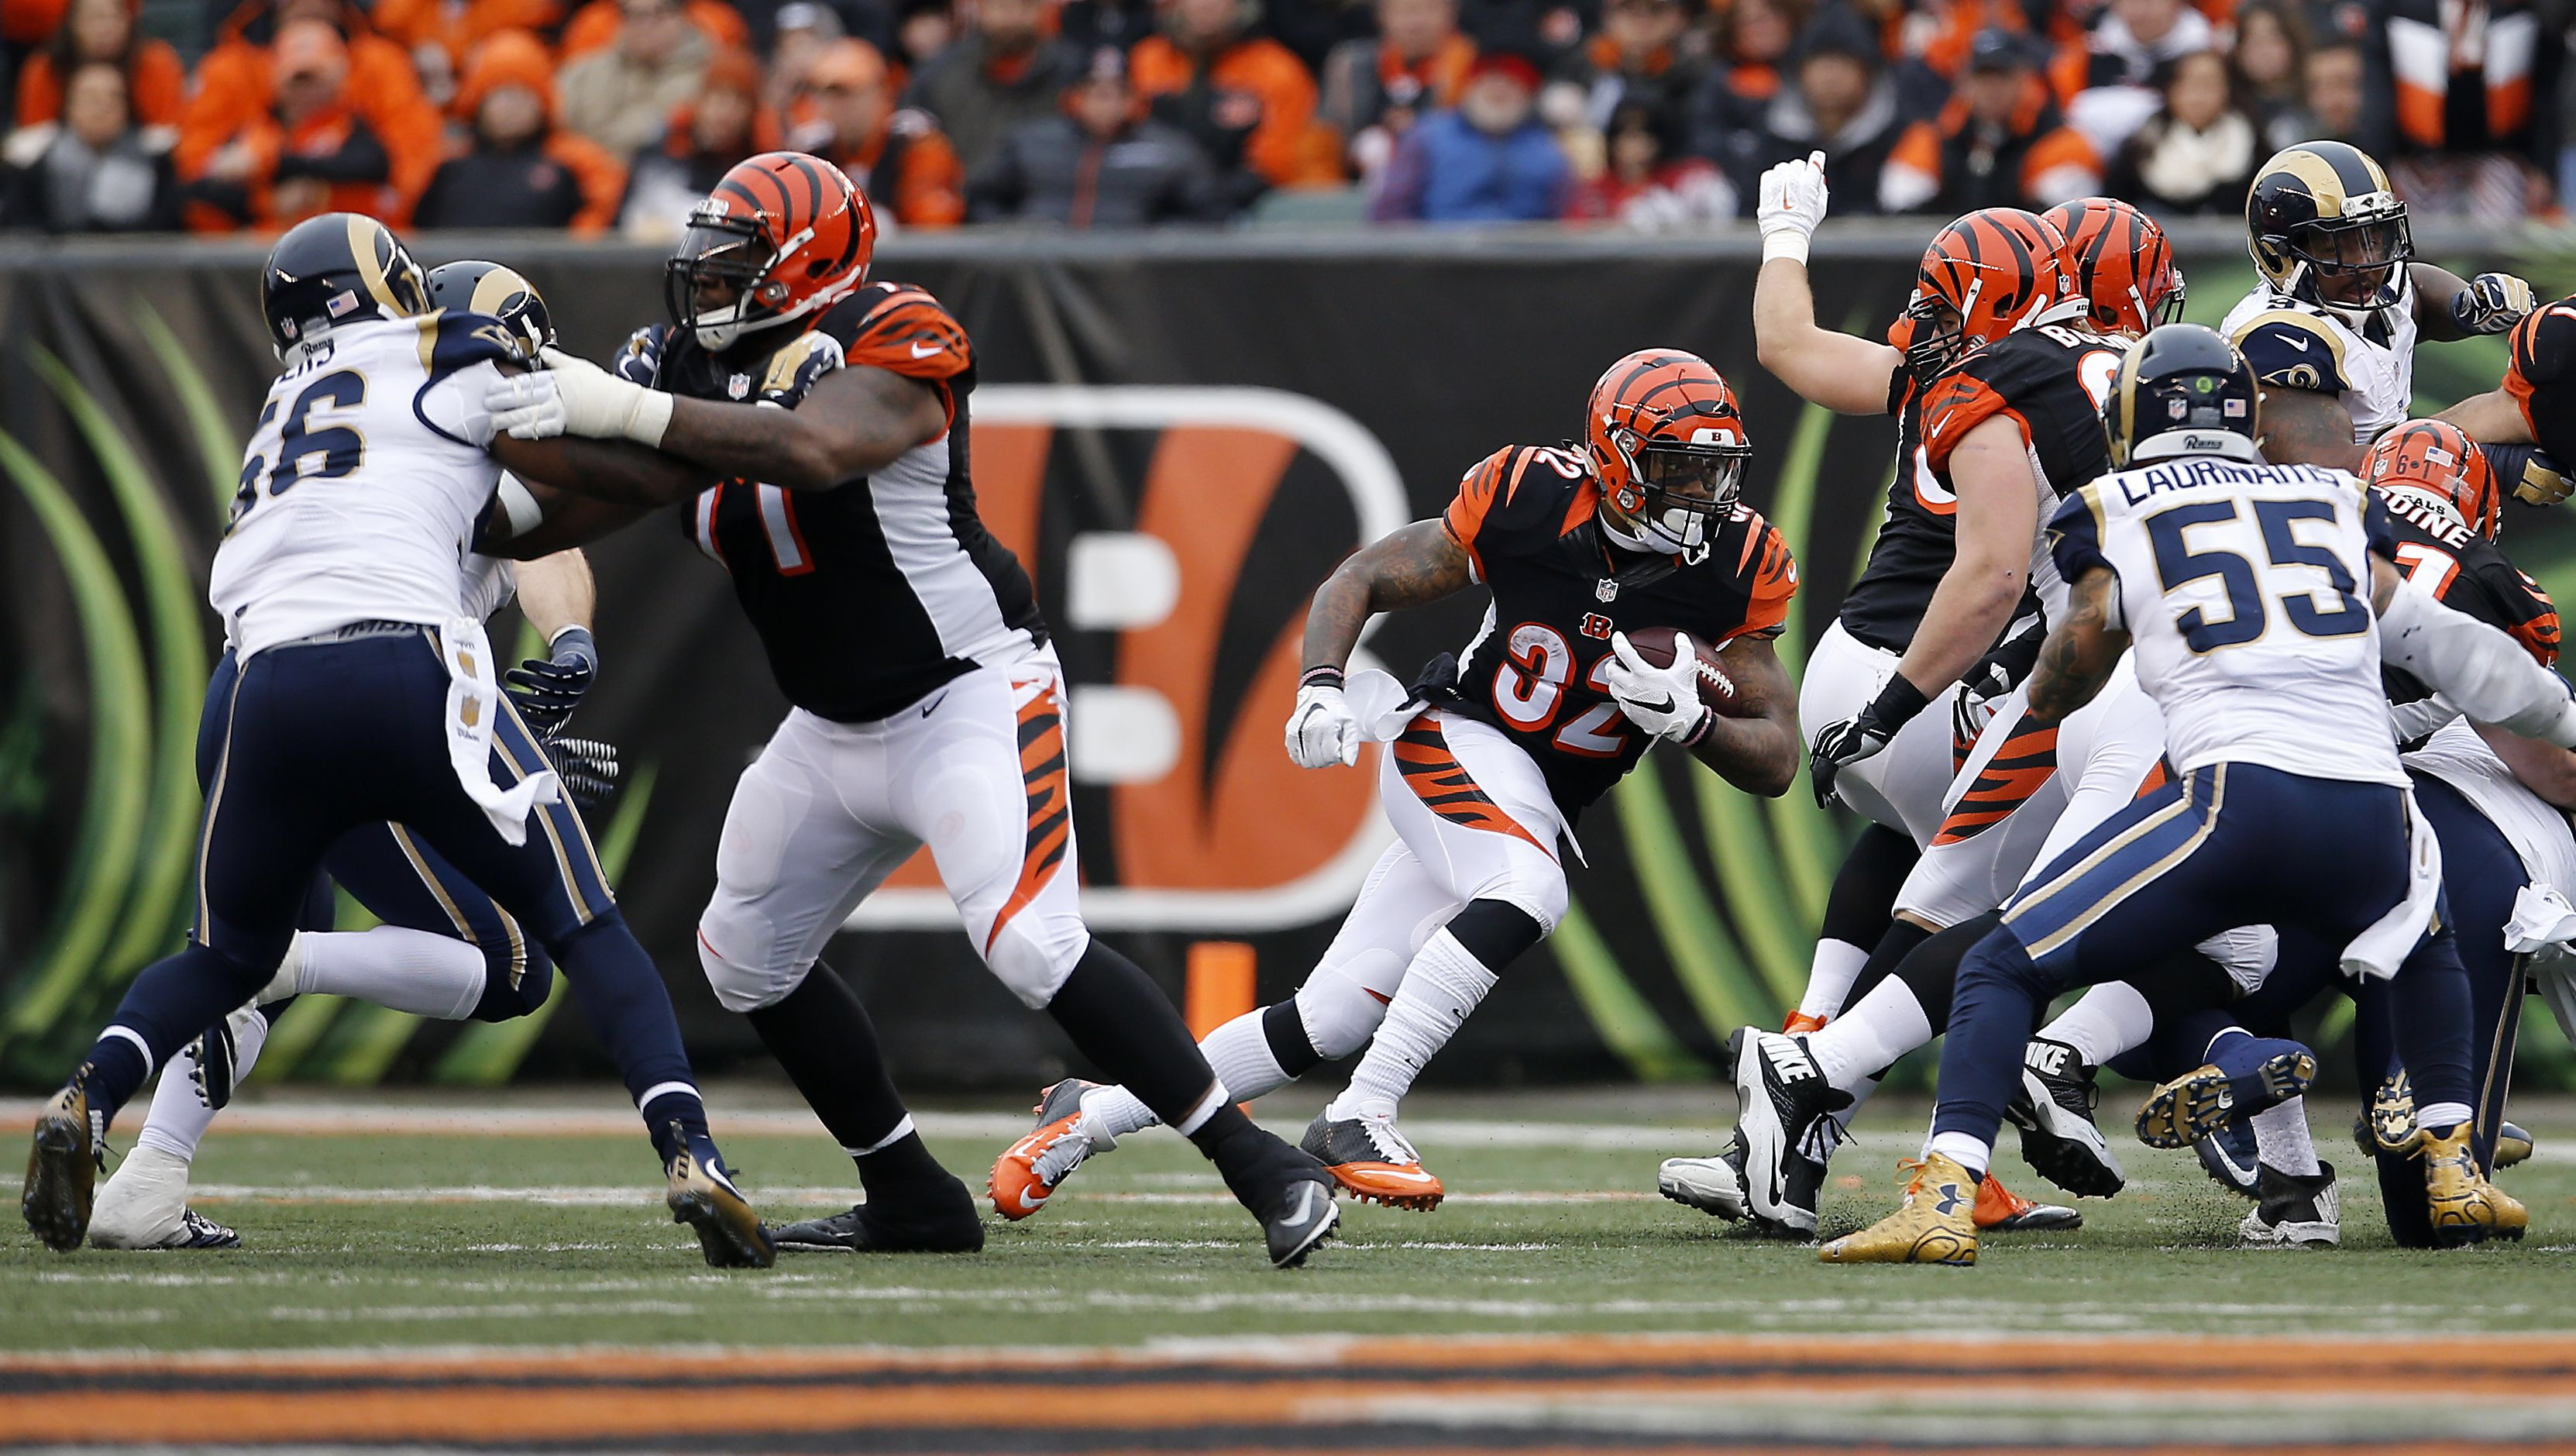 Cincinnati Bengals running back Jeremy Hill (32), center